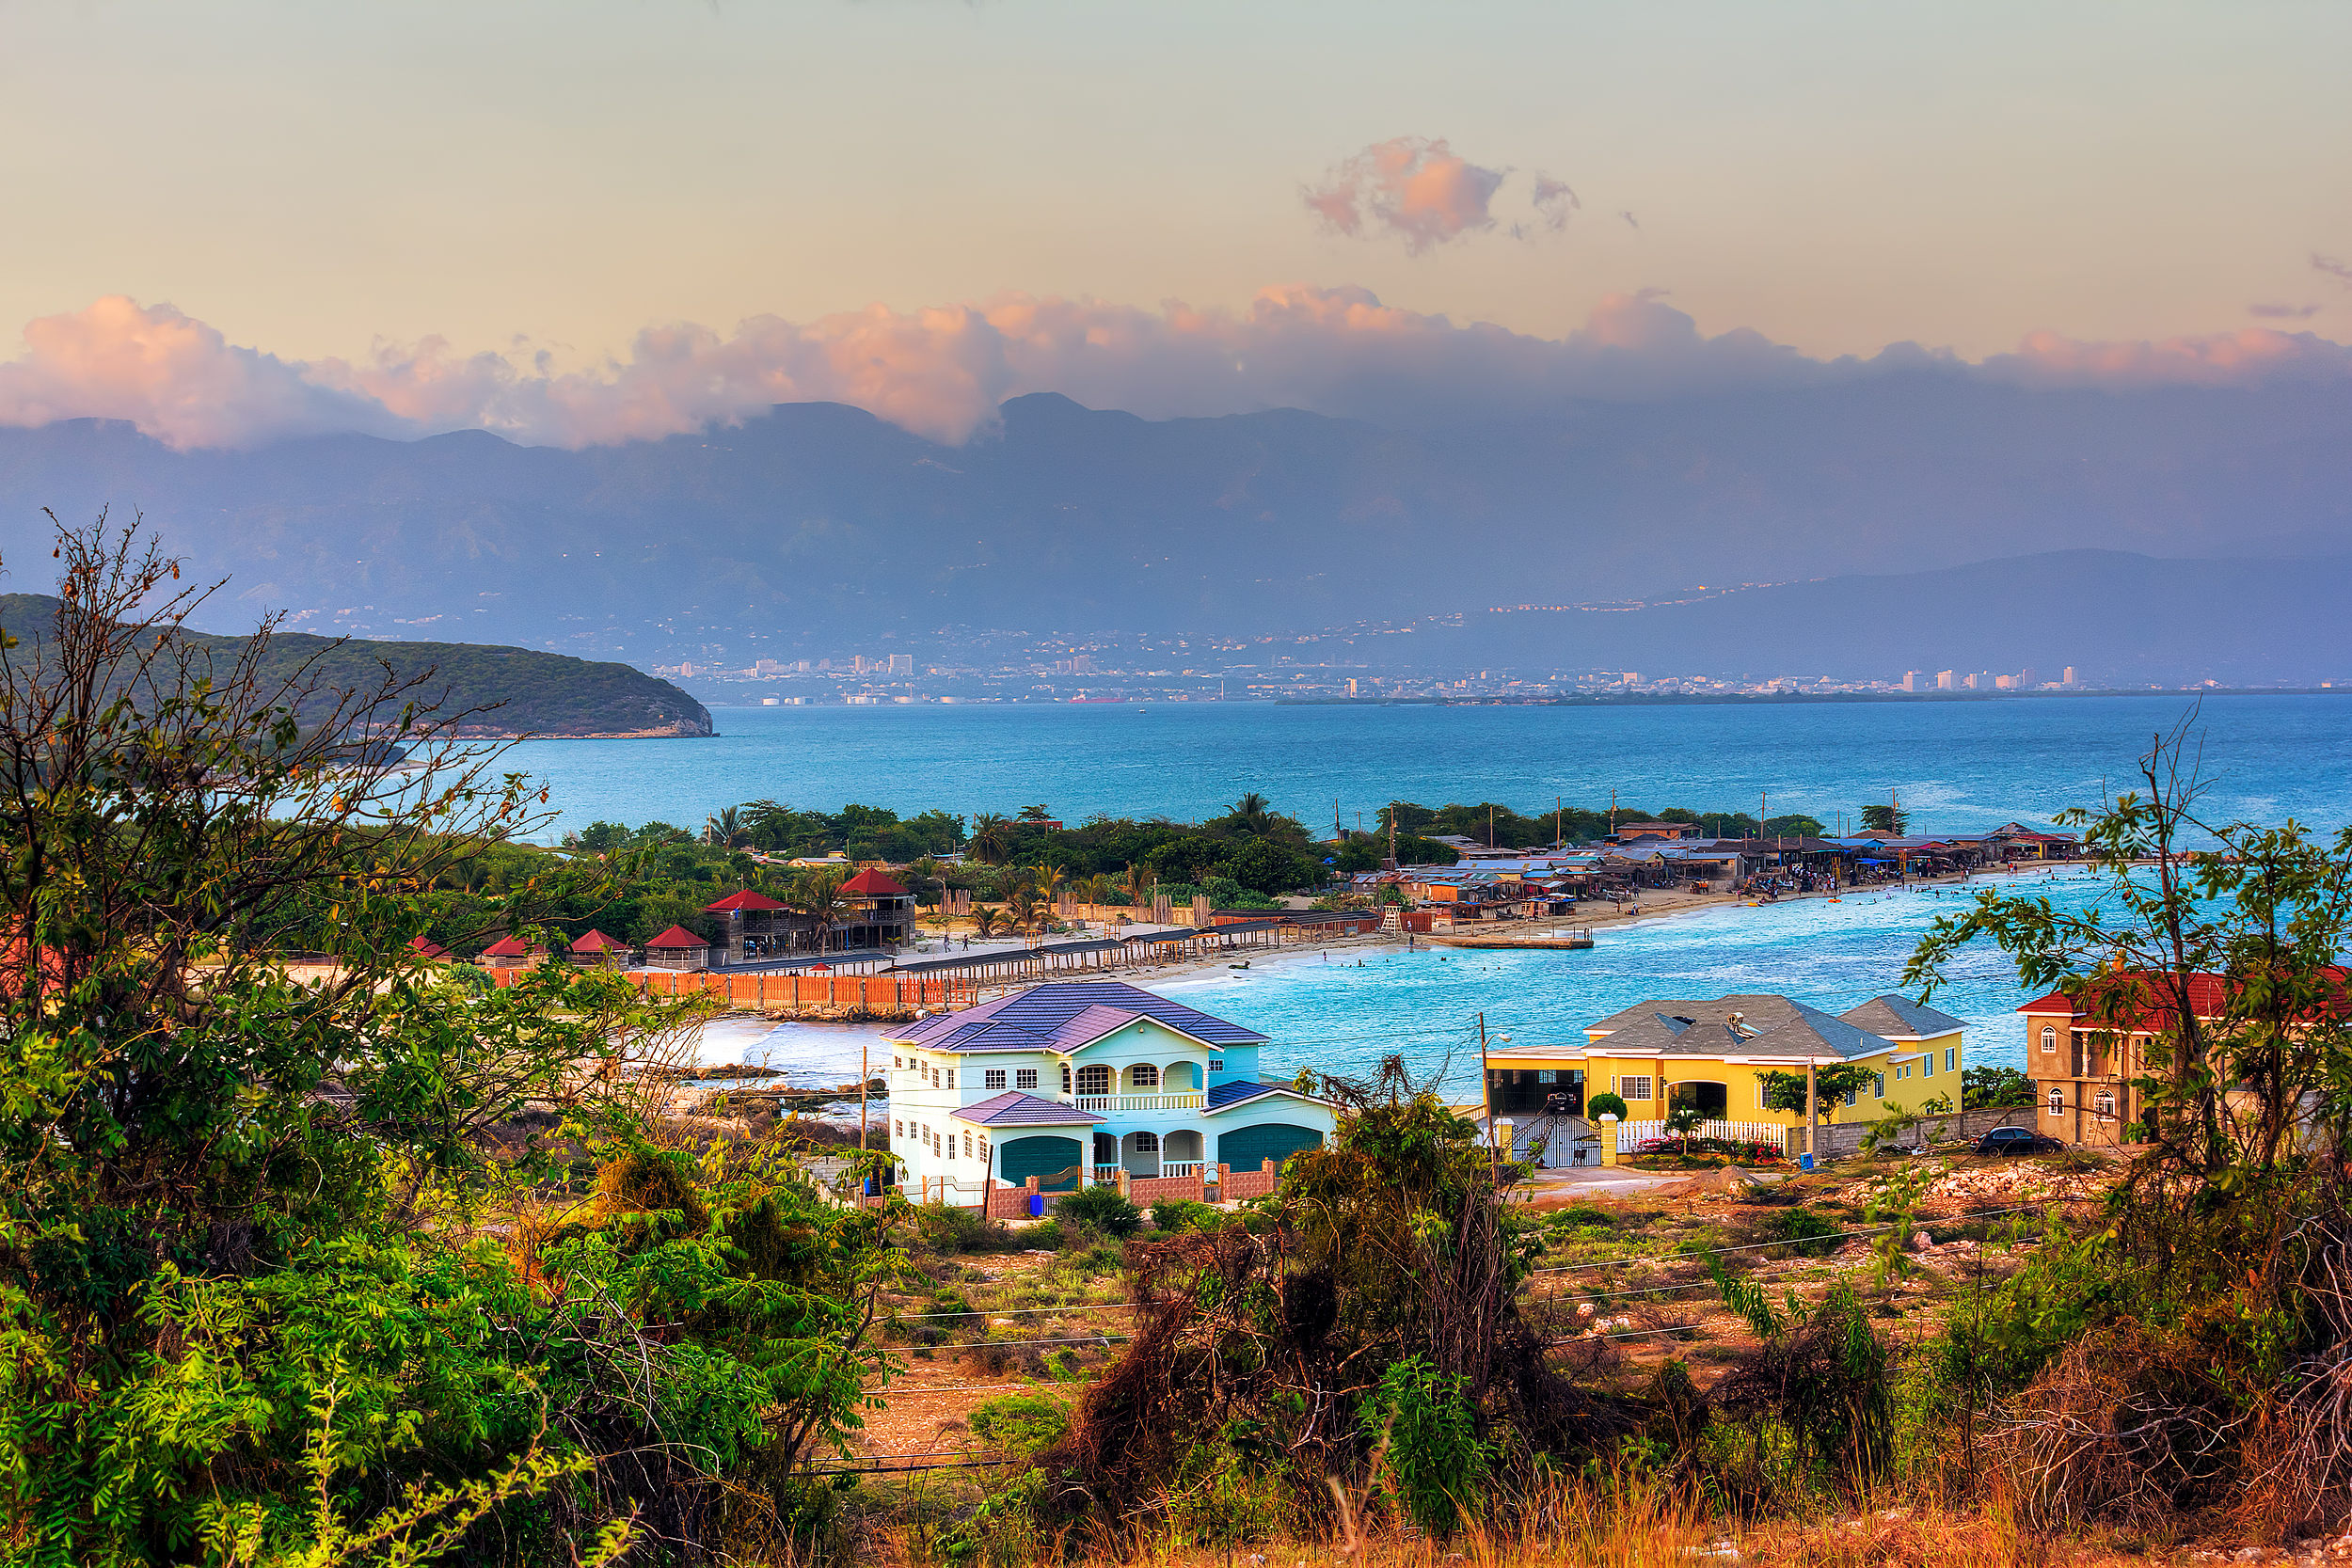 A beautiful morning view from Hellshire in Portmore, St Catherine, Jamaica.